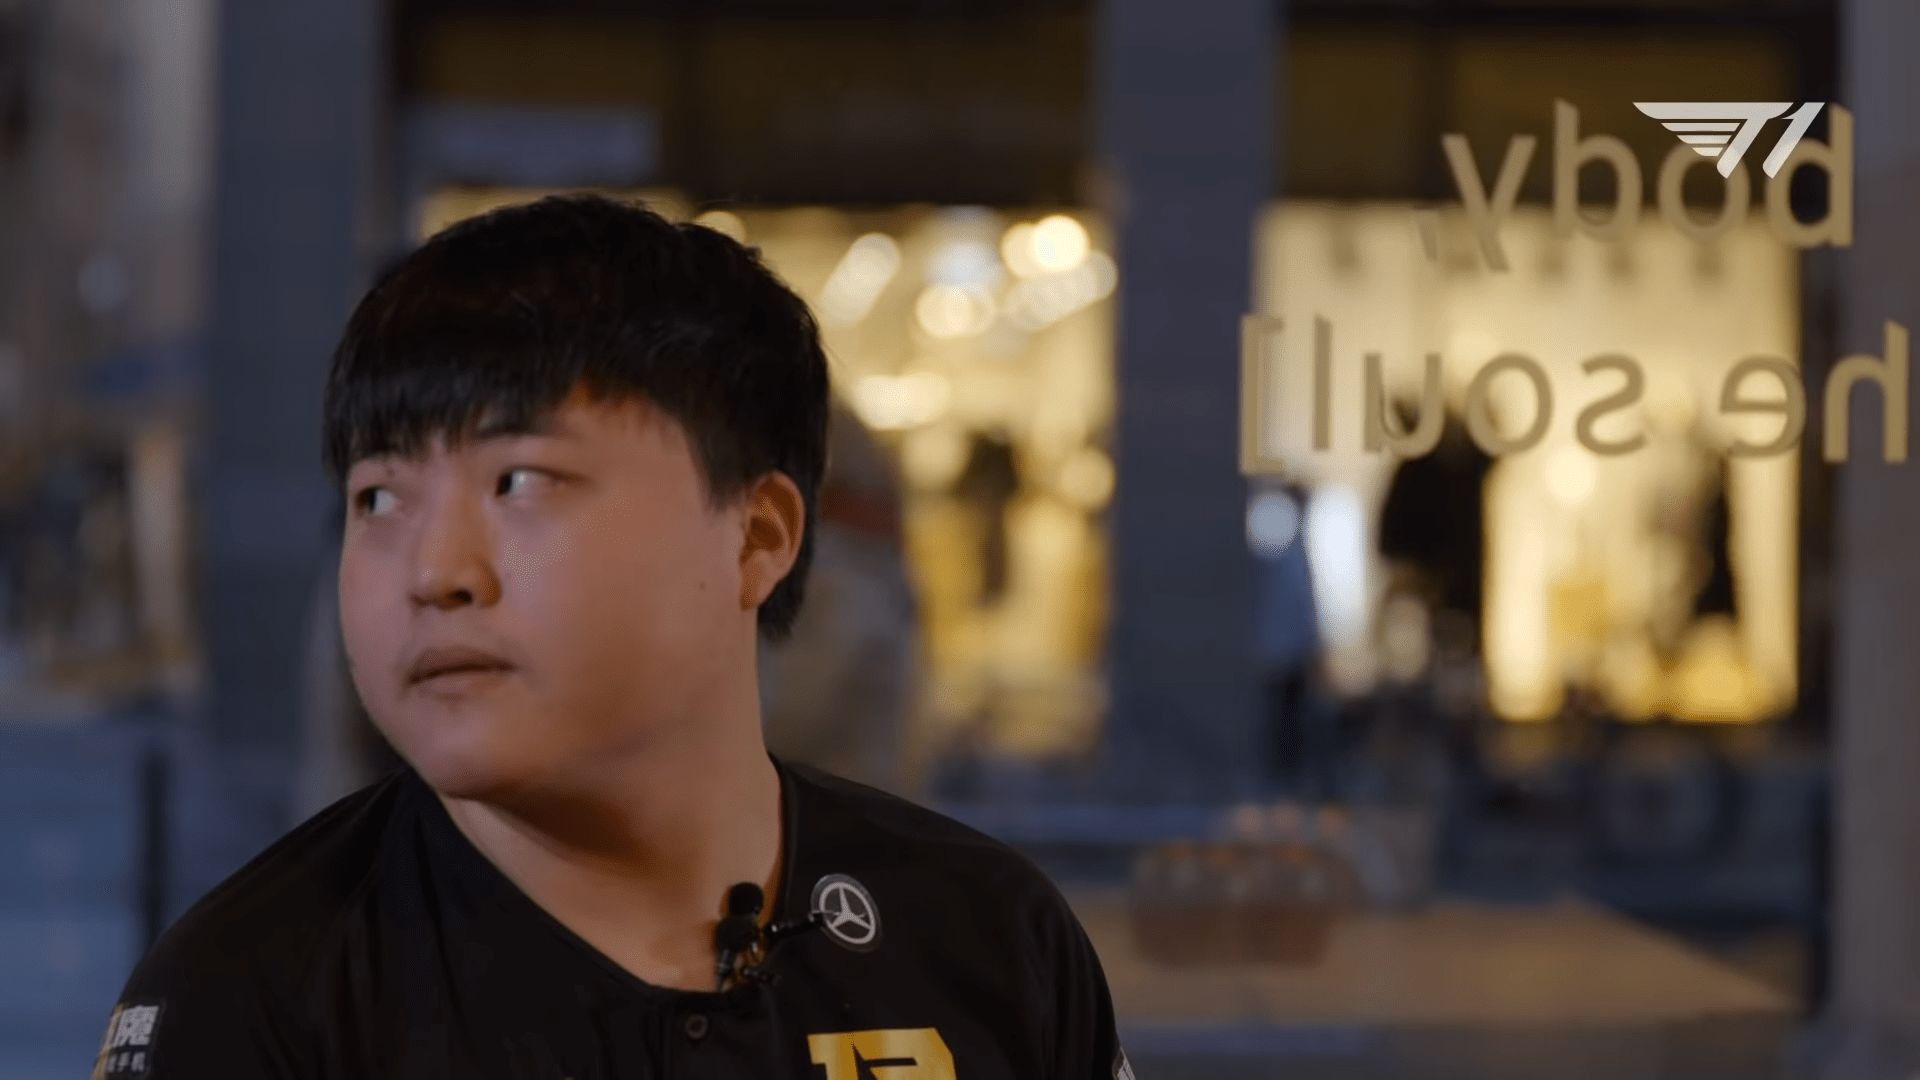 Legendary Chinese ADC Uzi Became A Free Agent On April 30th After His Contract With RNG Expired